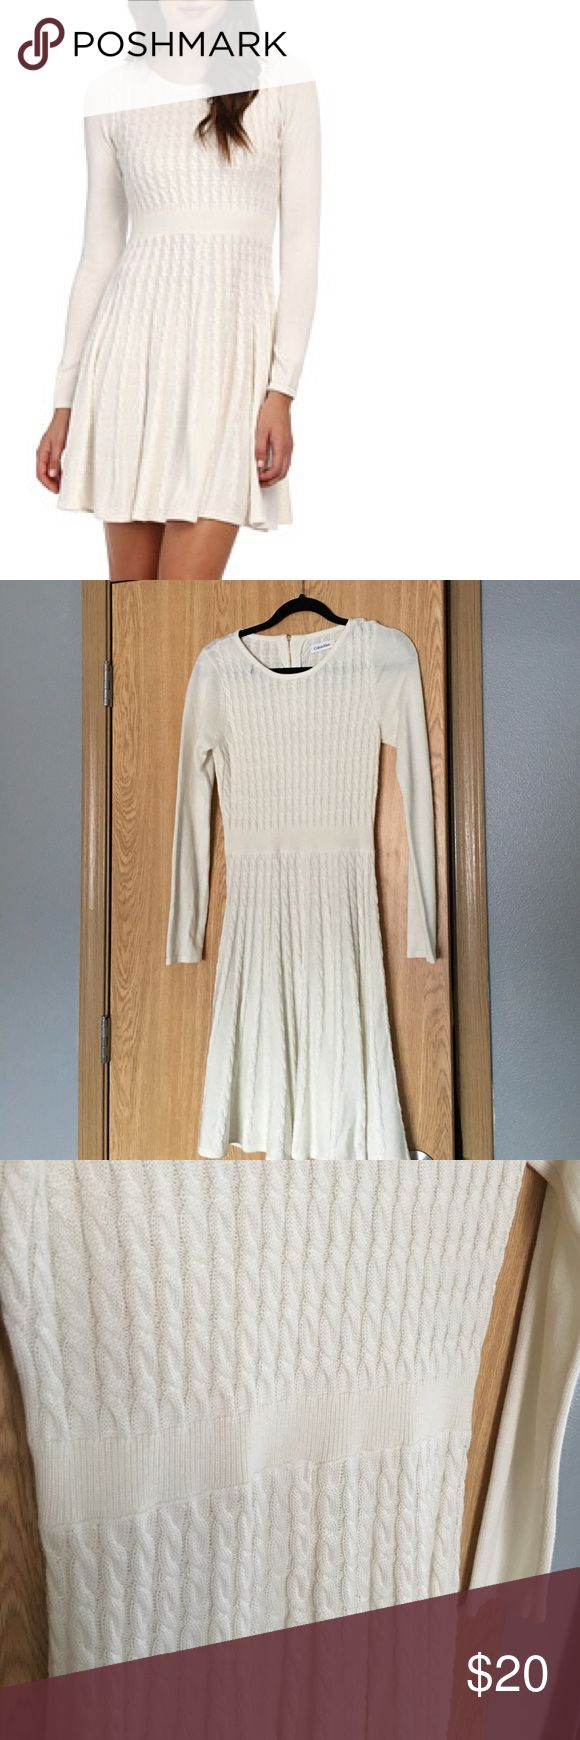 Calvin Klein long sleeve sweater skater dress Worn once still perfect condition. Very comfy!  size small Calvin Klein Dresses Long Sleeve